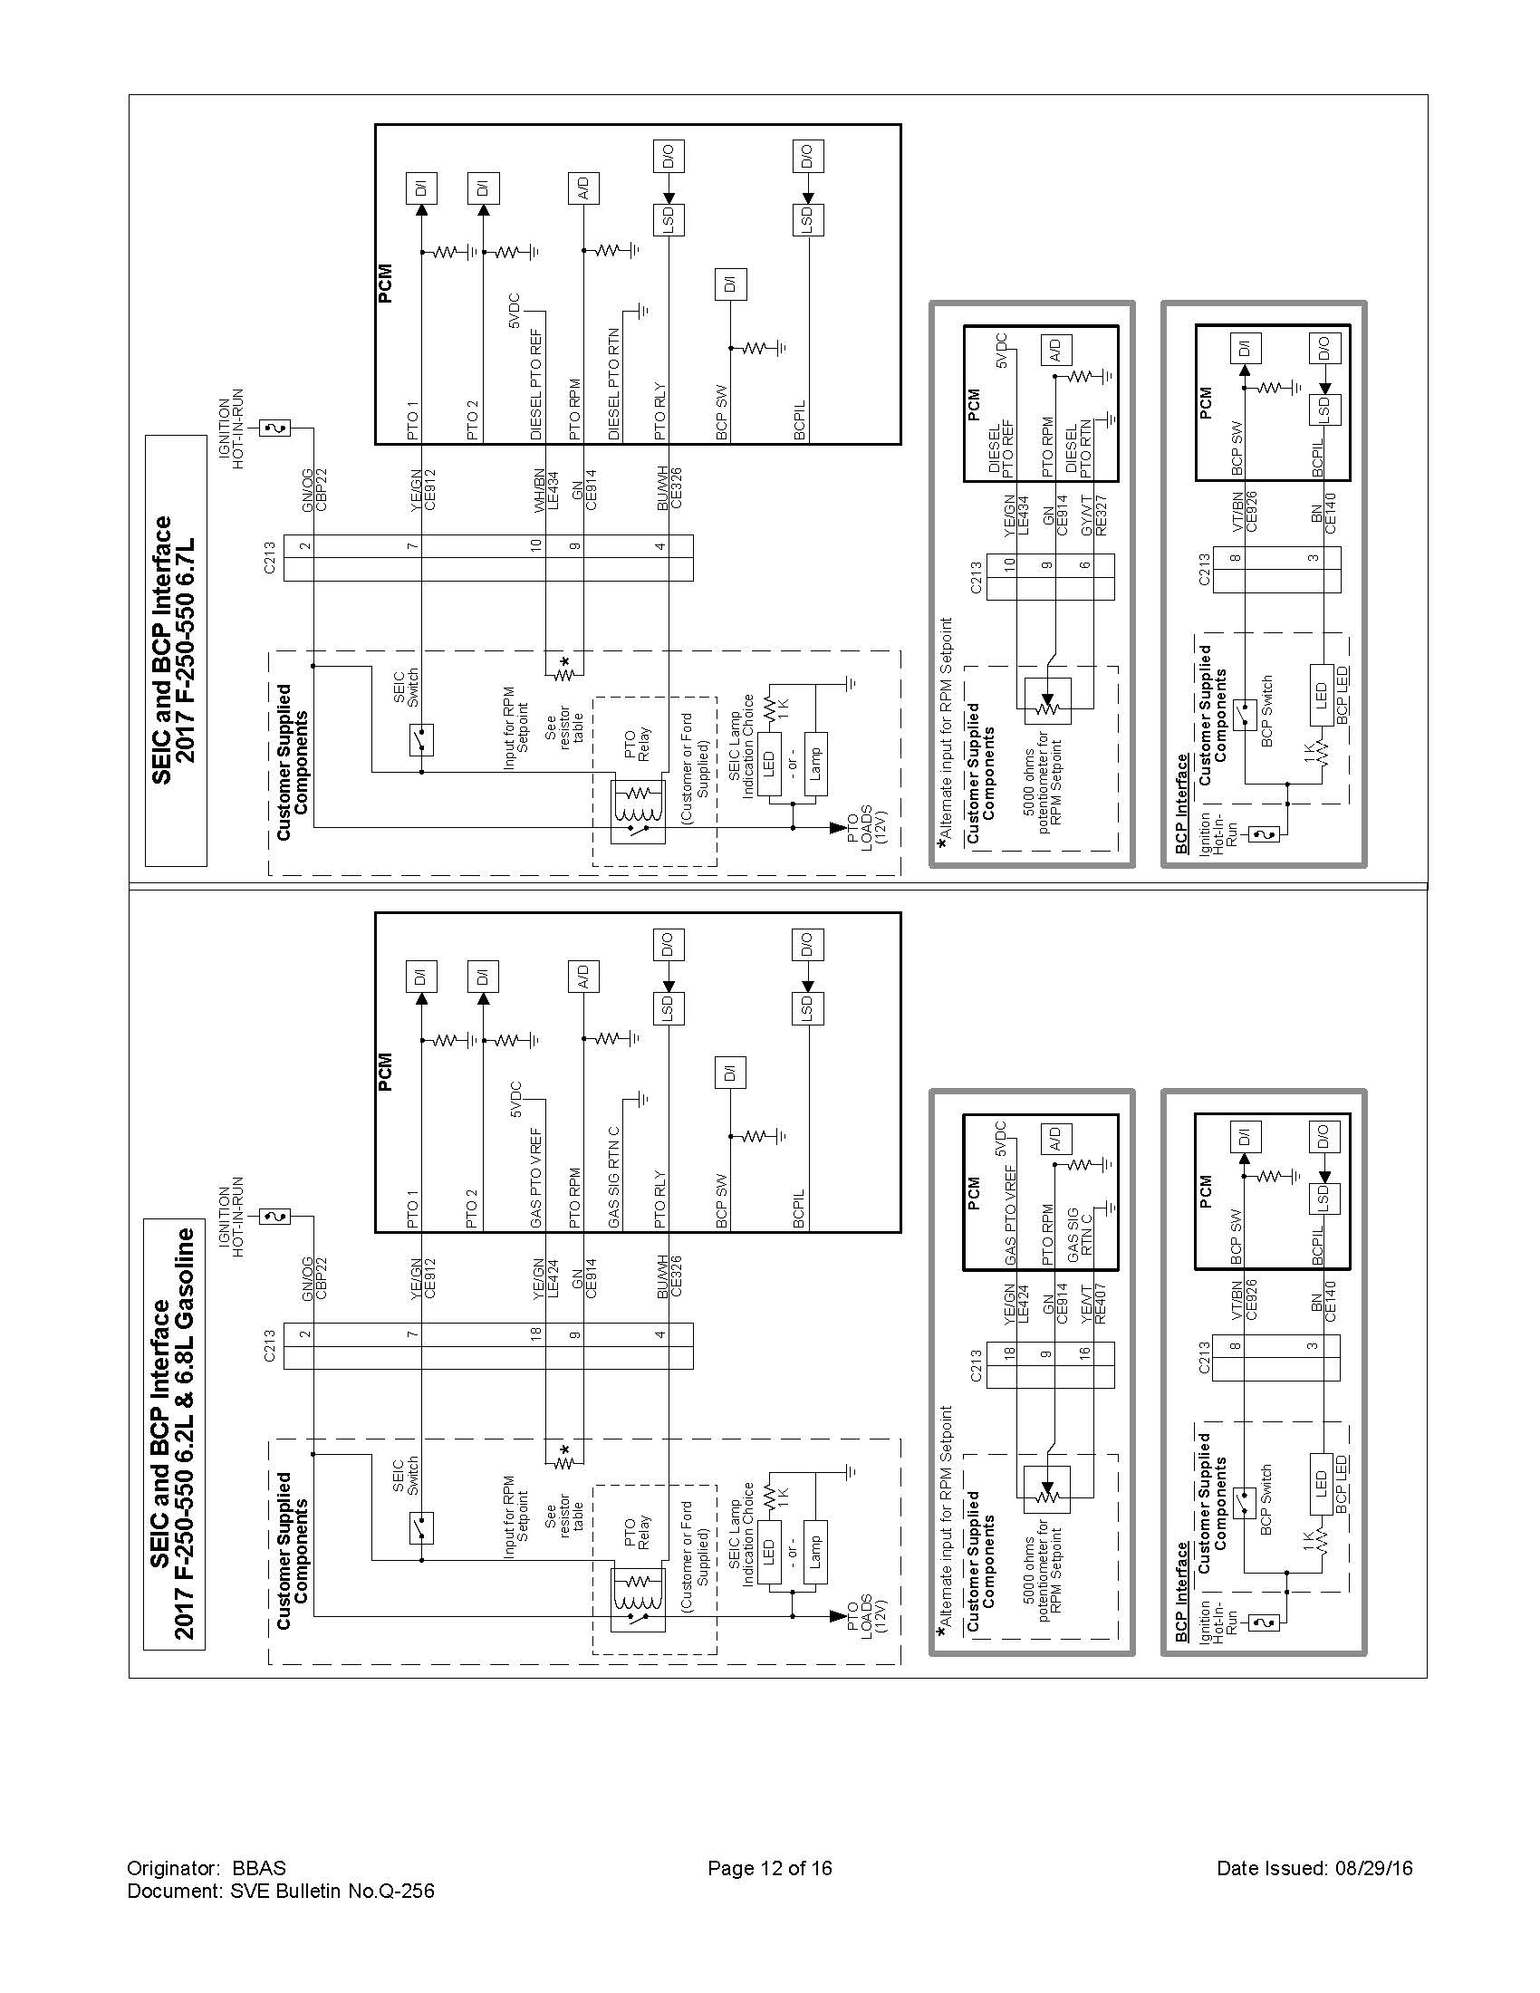 John Deere 1520 Wiring Diagram – Image Wiring Diagram on john deere ignition wiring diagram, john deere la115 wiring diagram, john deere f510 wiring diagram, john deere mower wiring diagram, john deere lx173 wiring diagram, john deere lx178 wiring diagram, john deere la145 wiring diagram, john deere f932 wiring diagram, john deere 6420 wiring diagram, john deere f925 wiring diagram, john deere lt133 wiring diagram, john deere gt262 wiring diagram, john deere f912 wiring diagram, john deere f930 wiring diagram, john deere gt235 wiring diagram, john deere f680 wiring diagram, john deere f935 wiring diagram, john deere f911 wiring diagram, john deere f1145 wiring diagram, john deere solenoid wiring diagram,